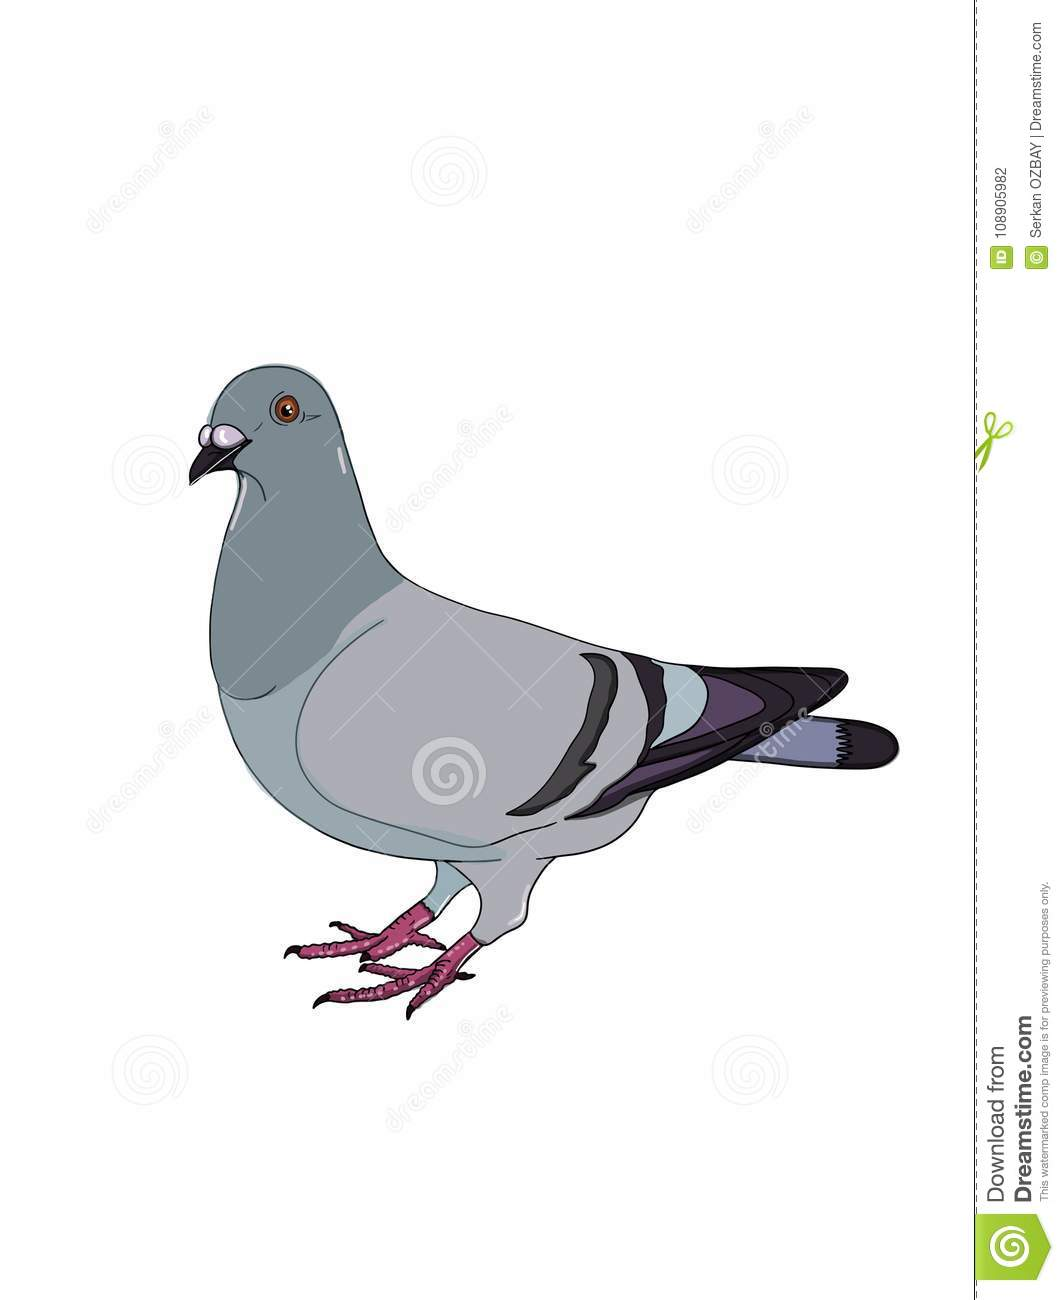 Pigeon illustration drawing and white background drawing cartoon and white background cartoon - Dessin pigeon ...